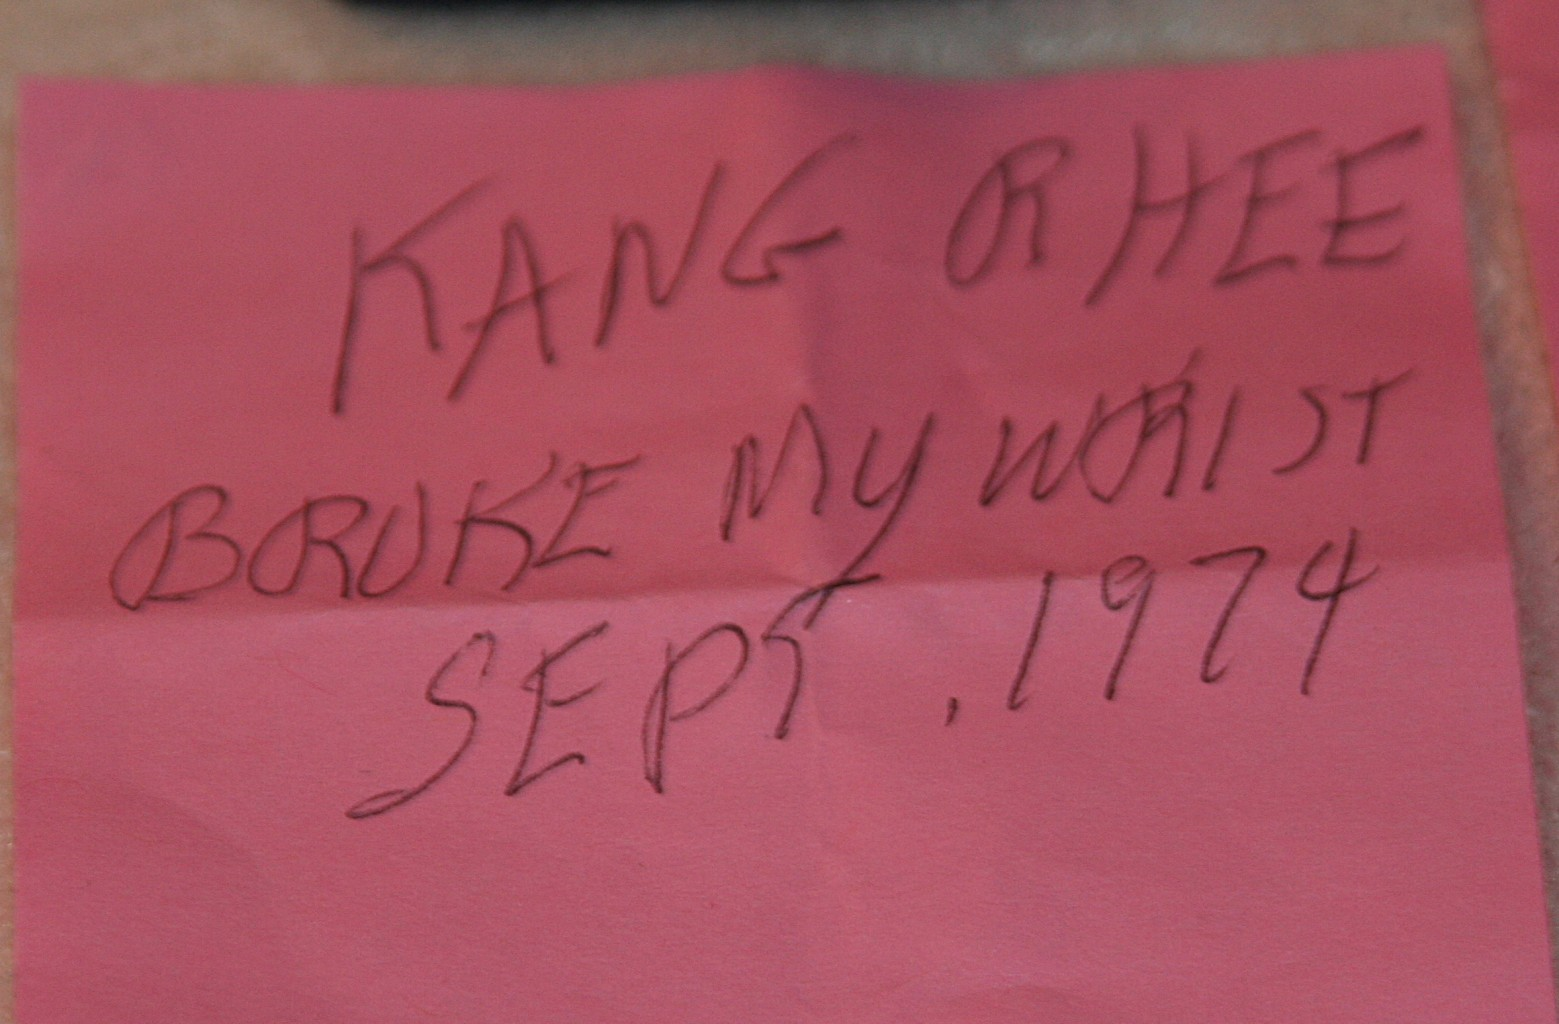 Jesse's note about Kang Rhee breaking his wrist in Sept. 1974